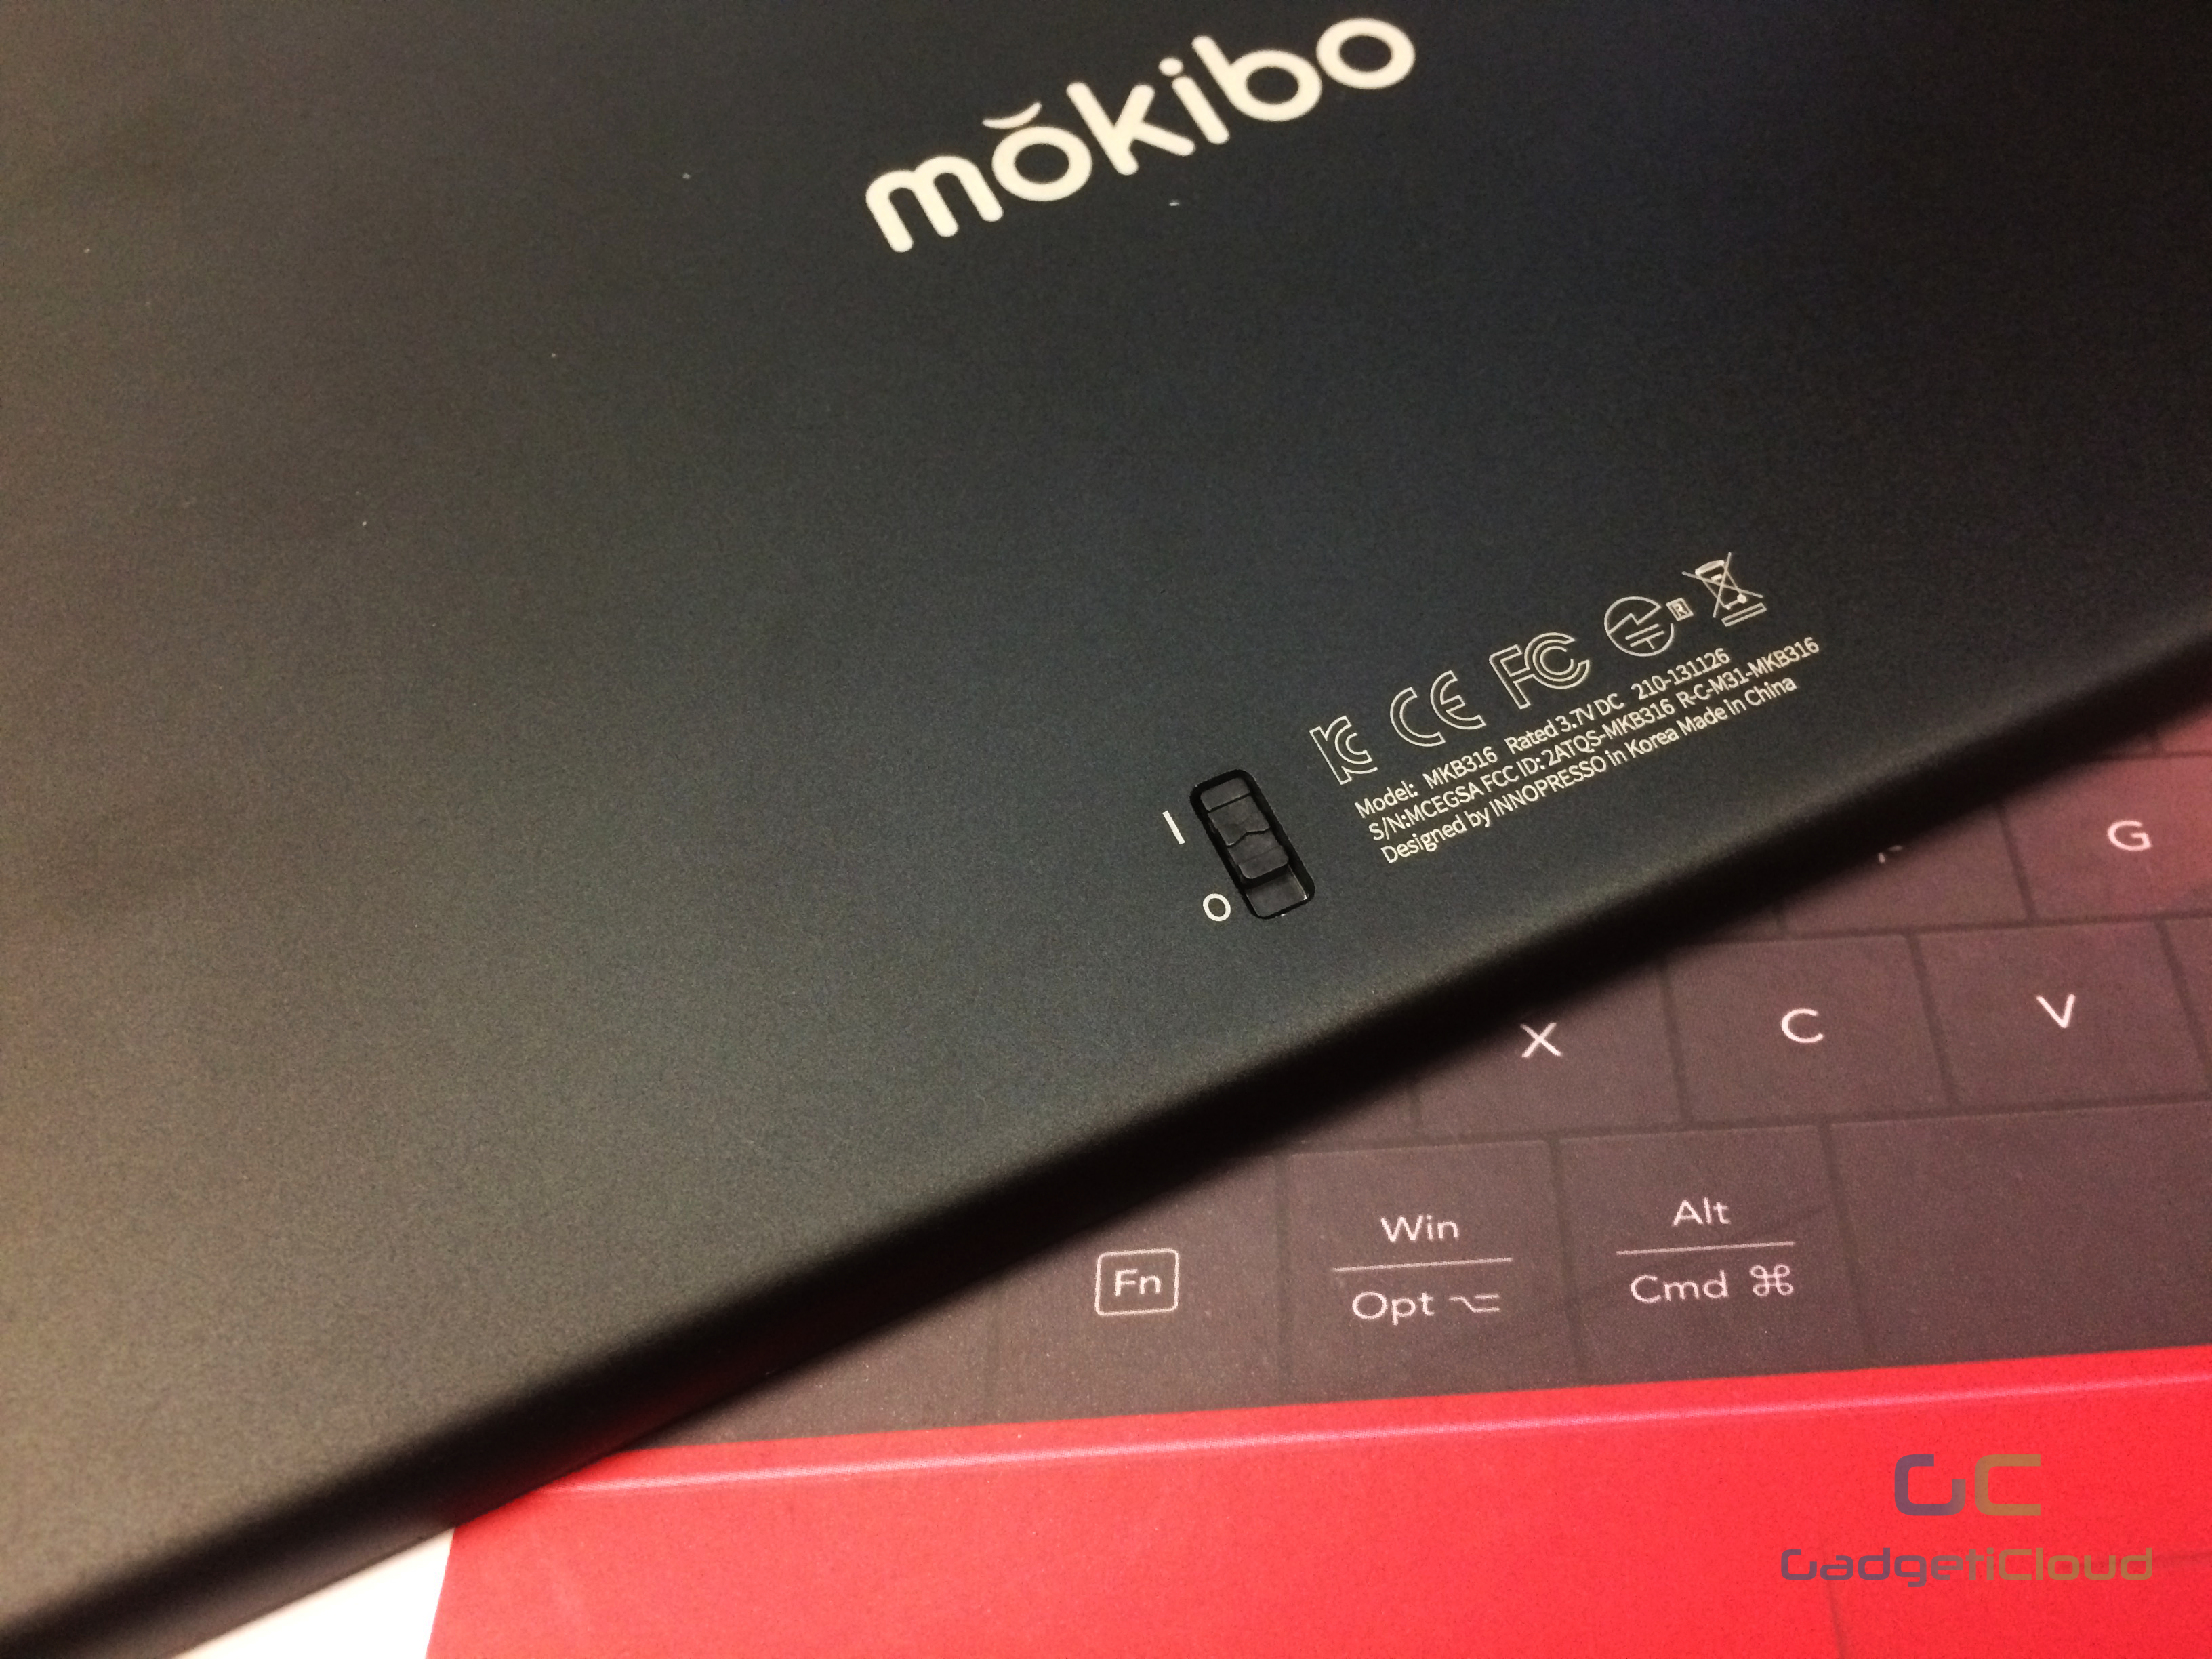 lexuma-mokibo-touchpad-keyboard-bluetooth-wireless-pantograph-laptop-black-power-switch